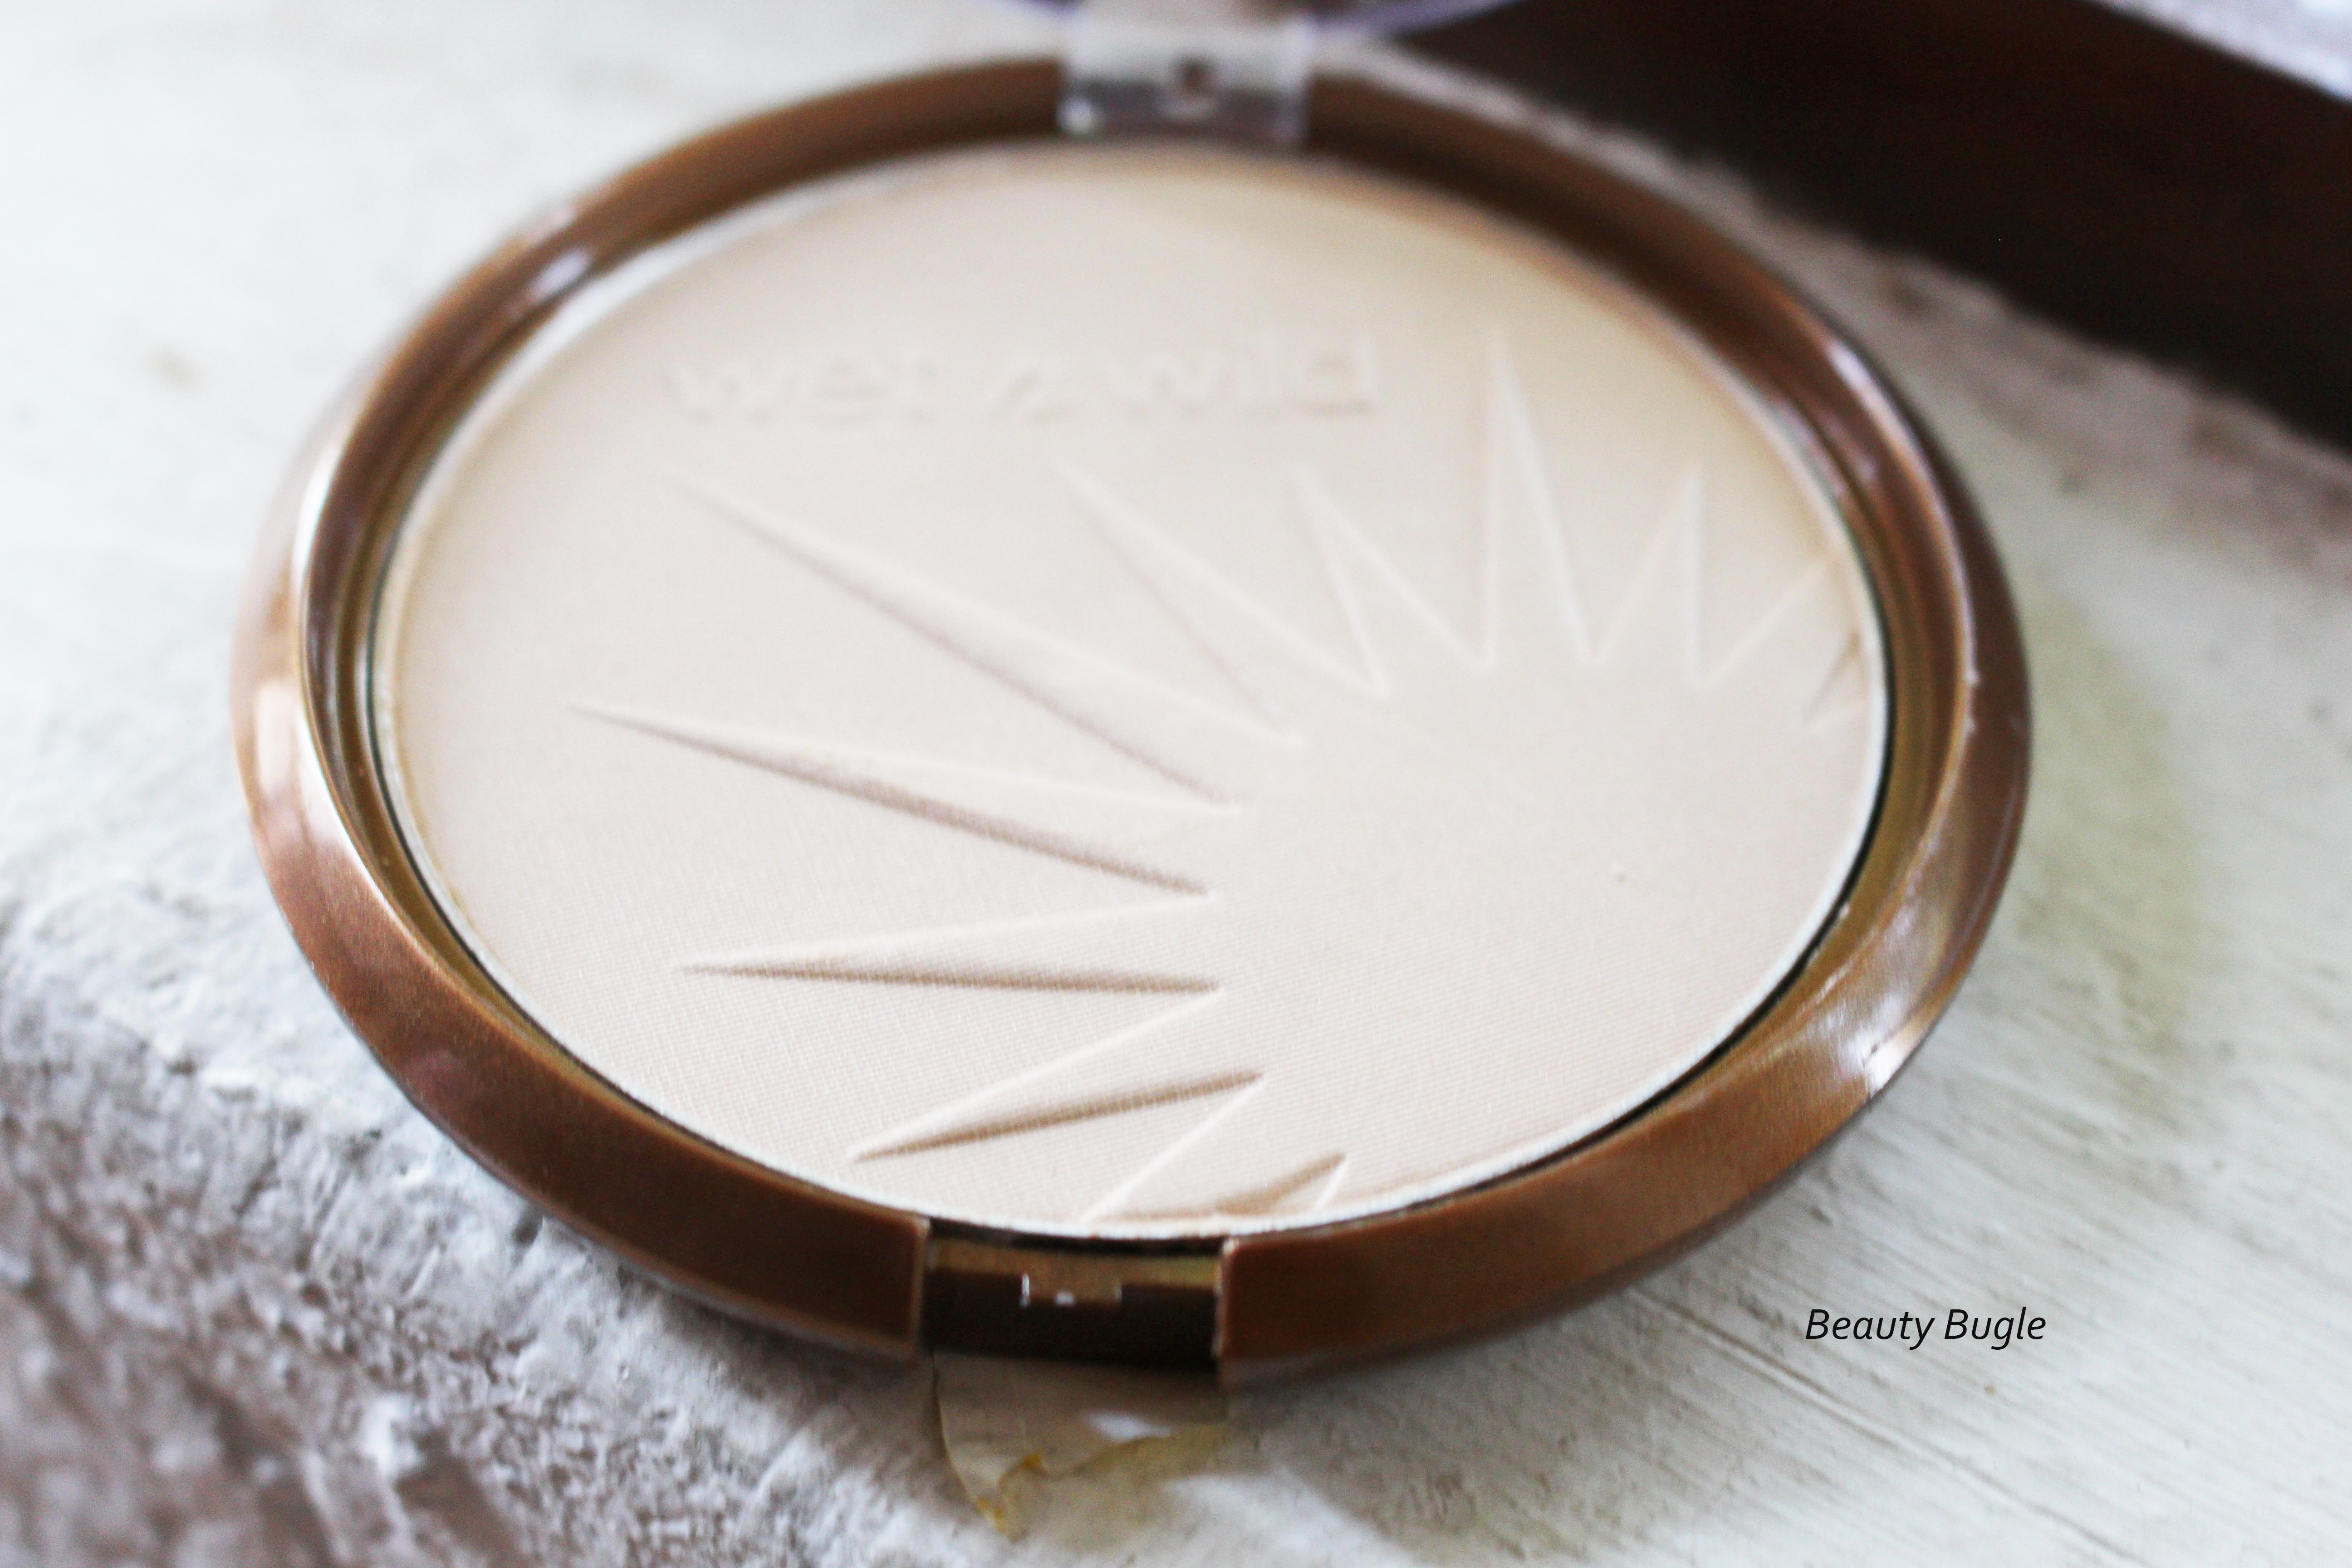 The pattern of the bronzer is gorgeous